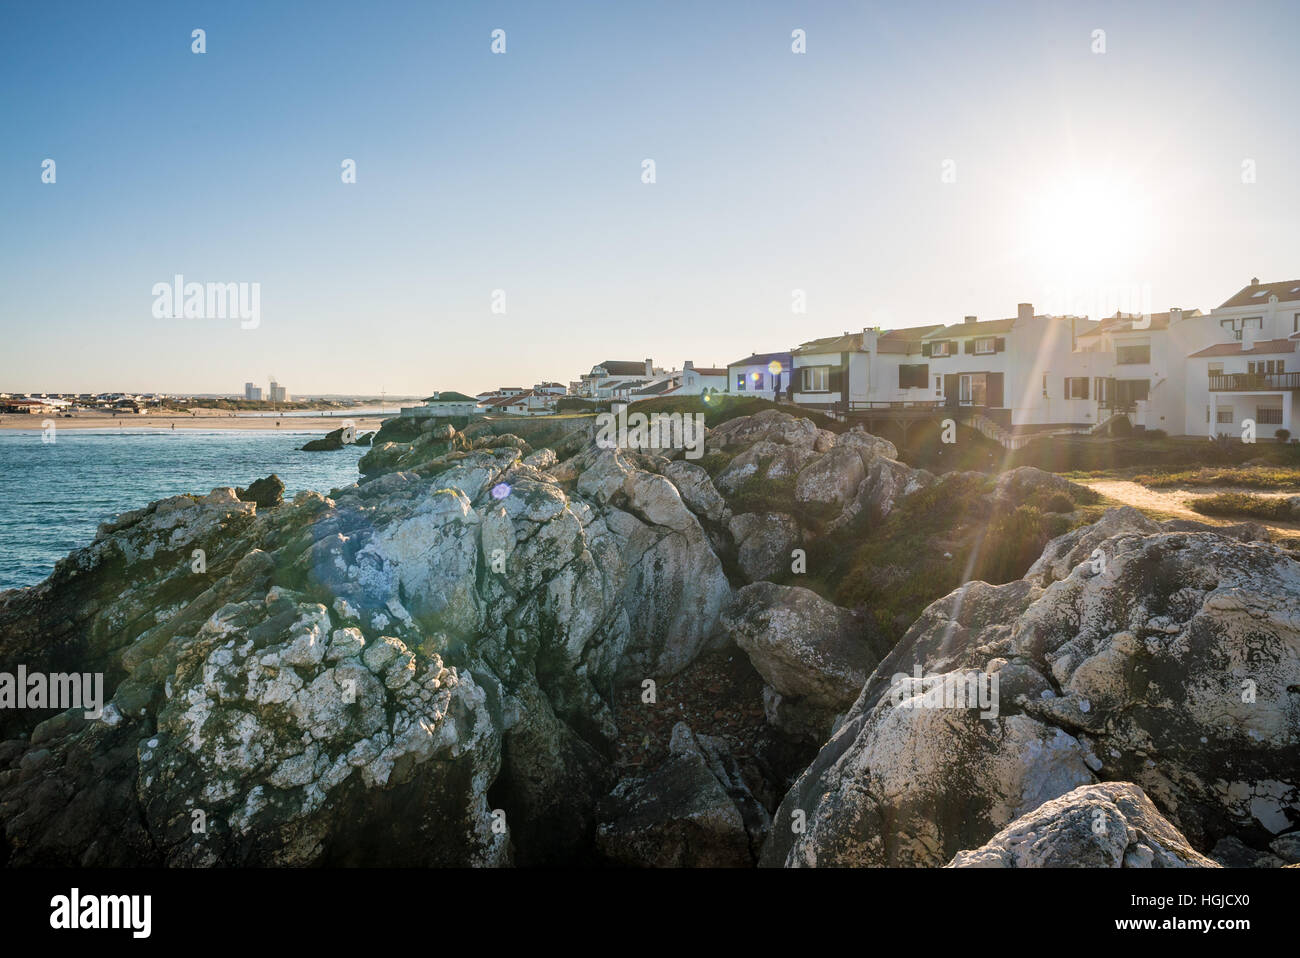 view of the houses on Baleal peninsula, Peniche, Portugal - Stock Image